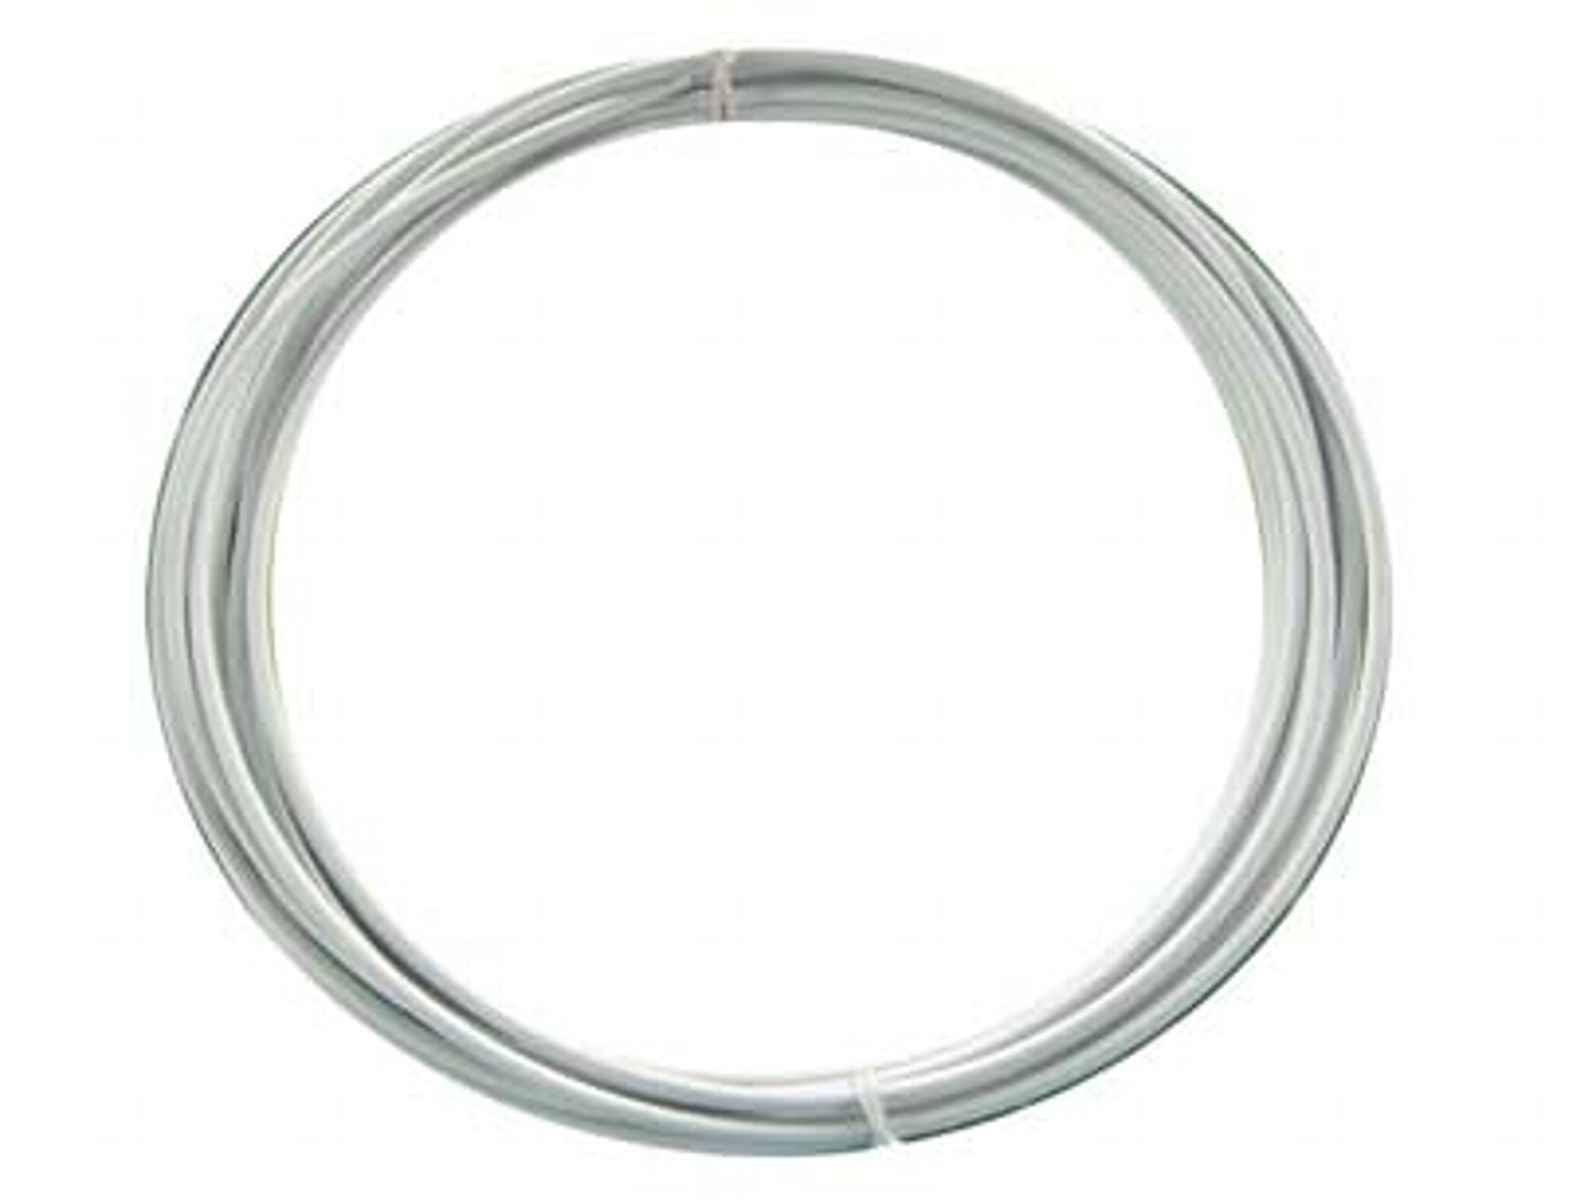 Sunlite SIS Cable Housing - White, 4mm x 25'